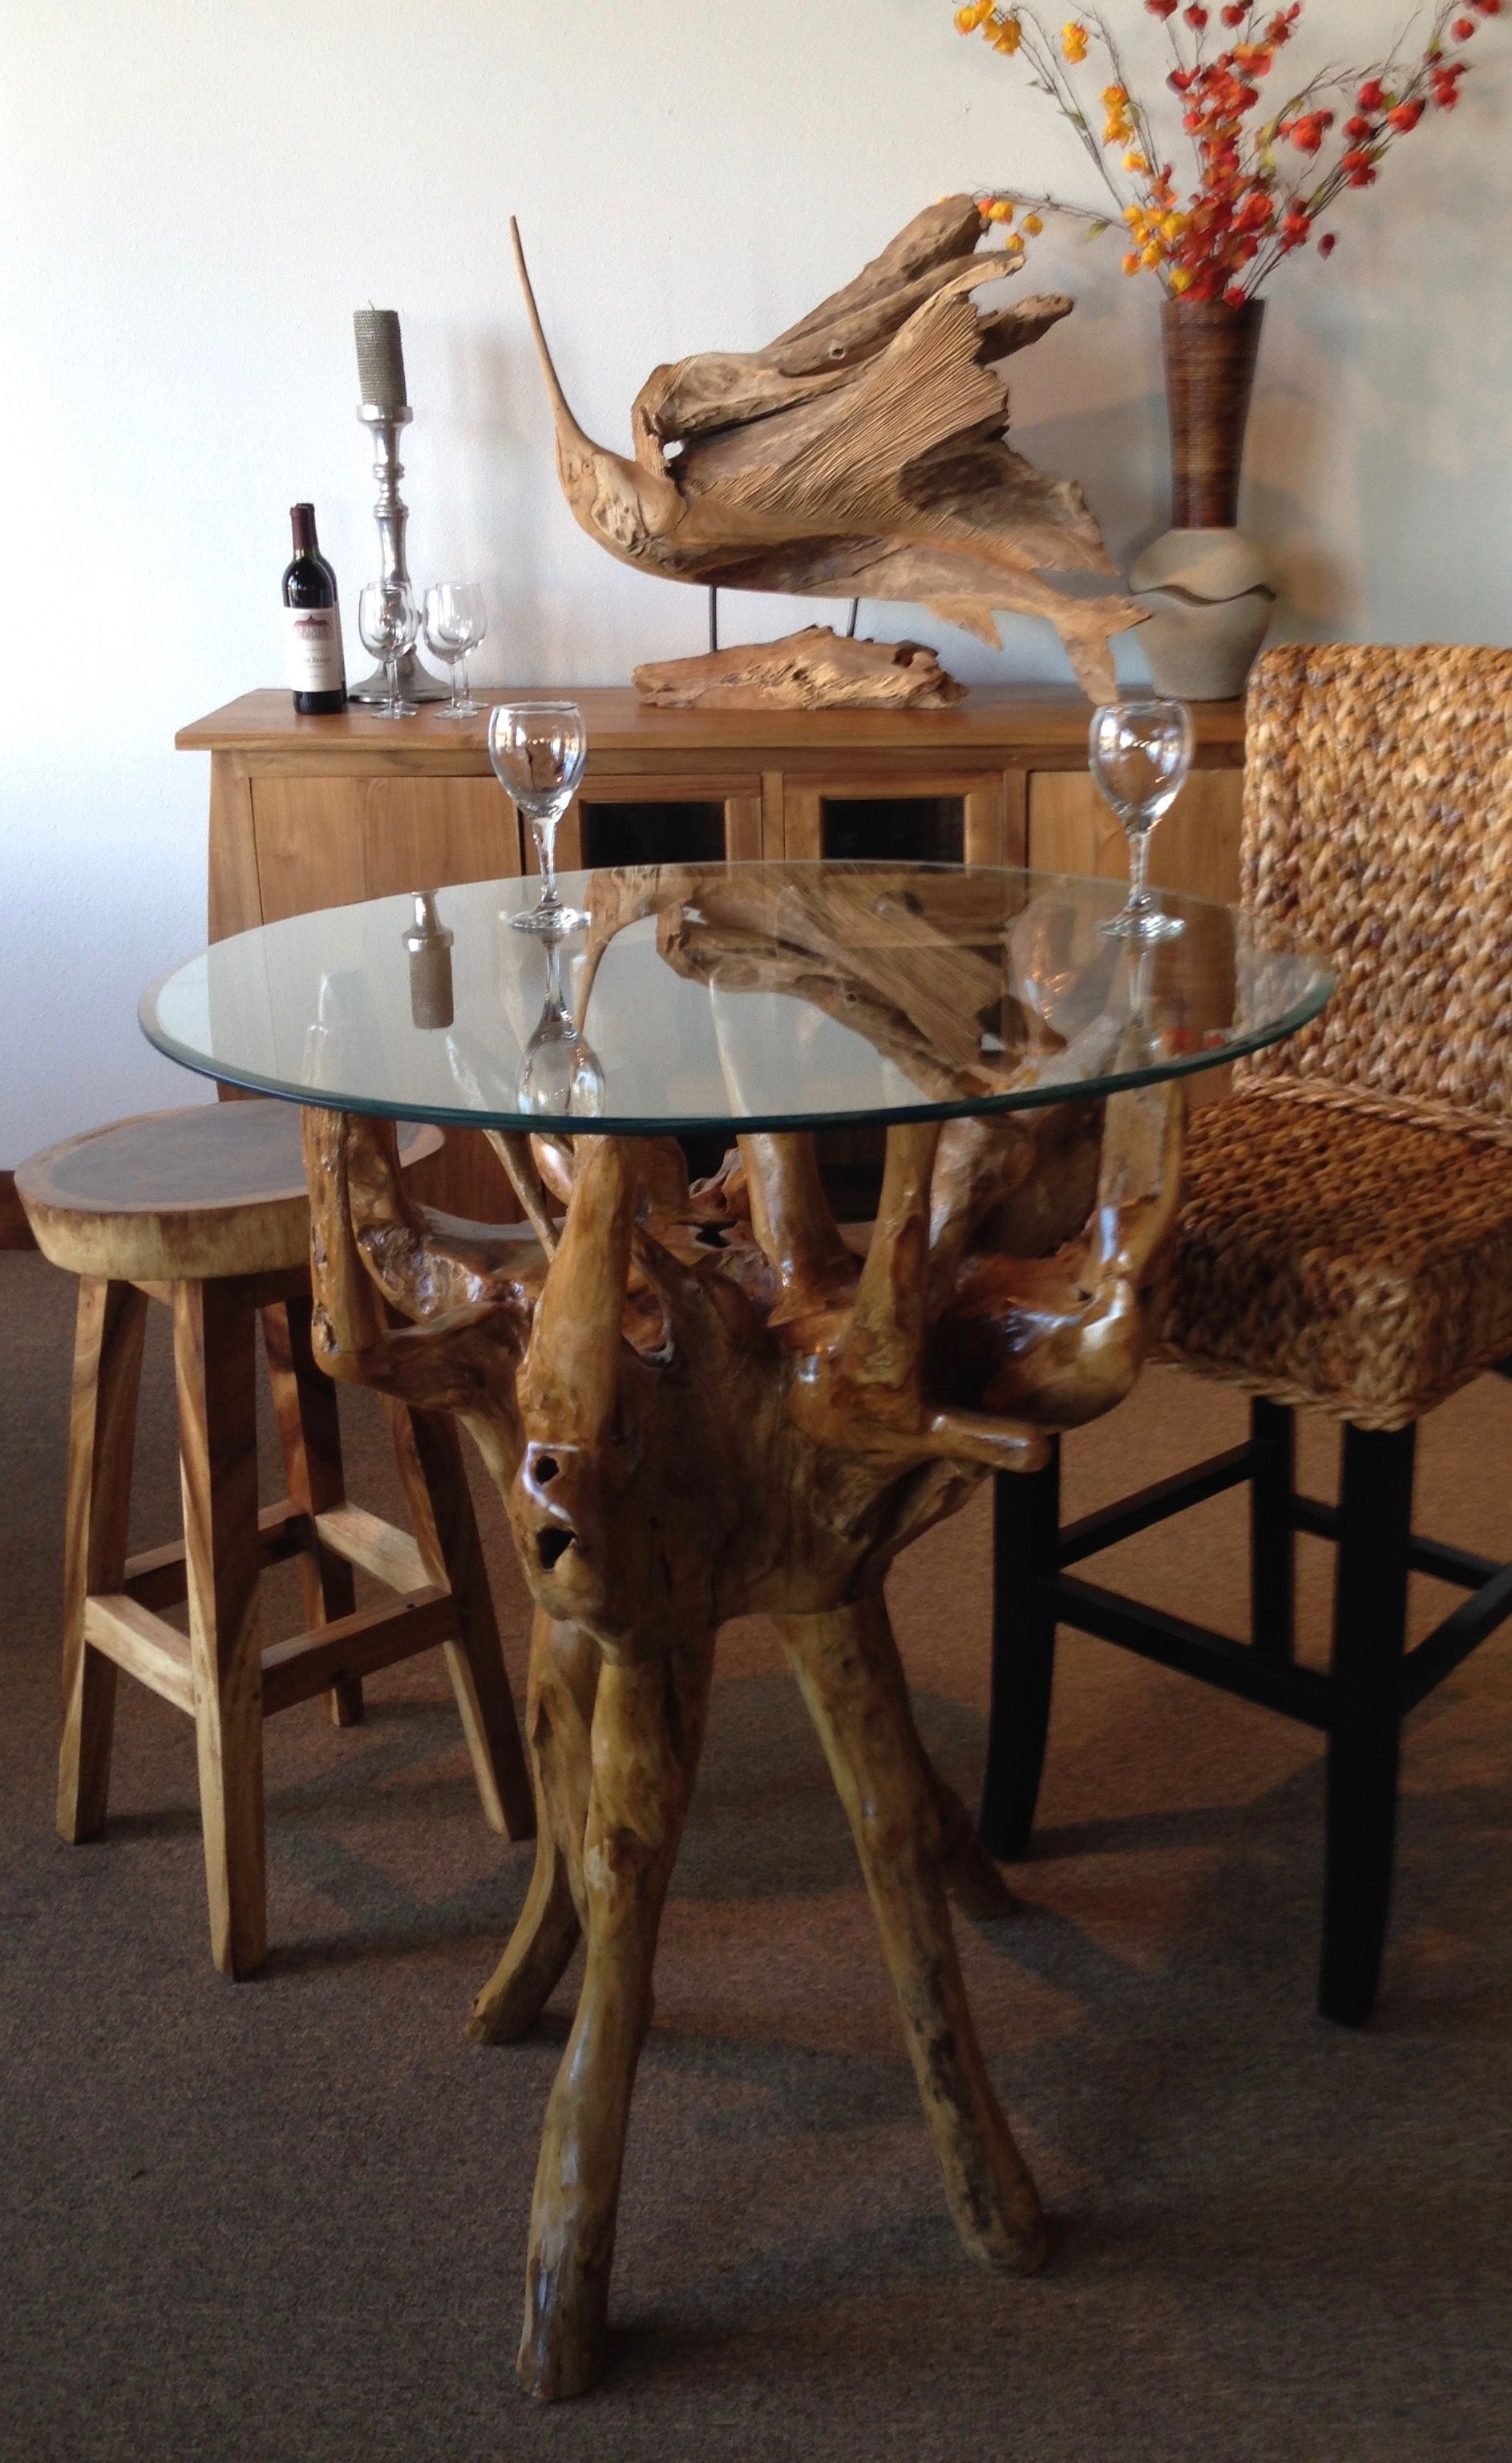 Teak Wood Root Bar Table Including 36 Inch Round Glass Top By Chic